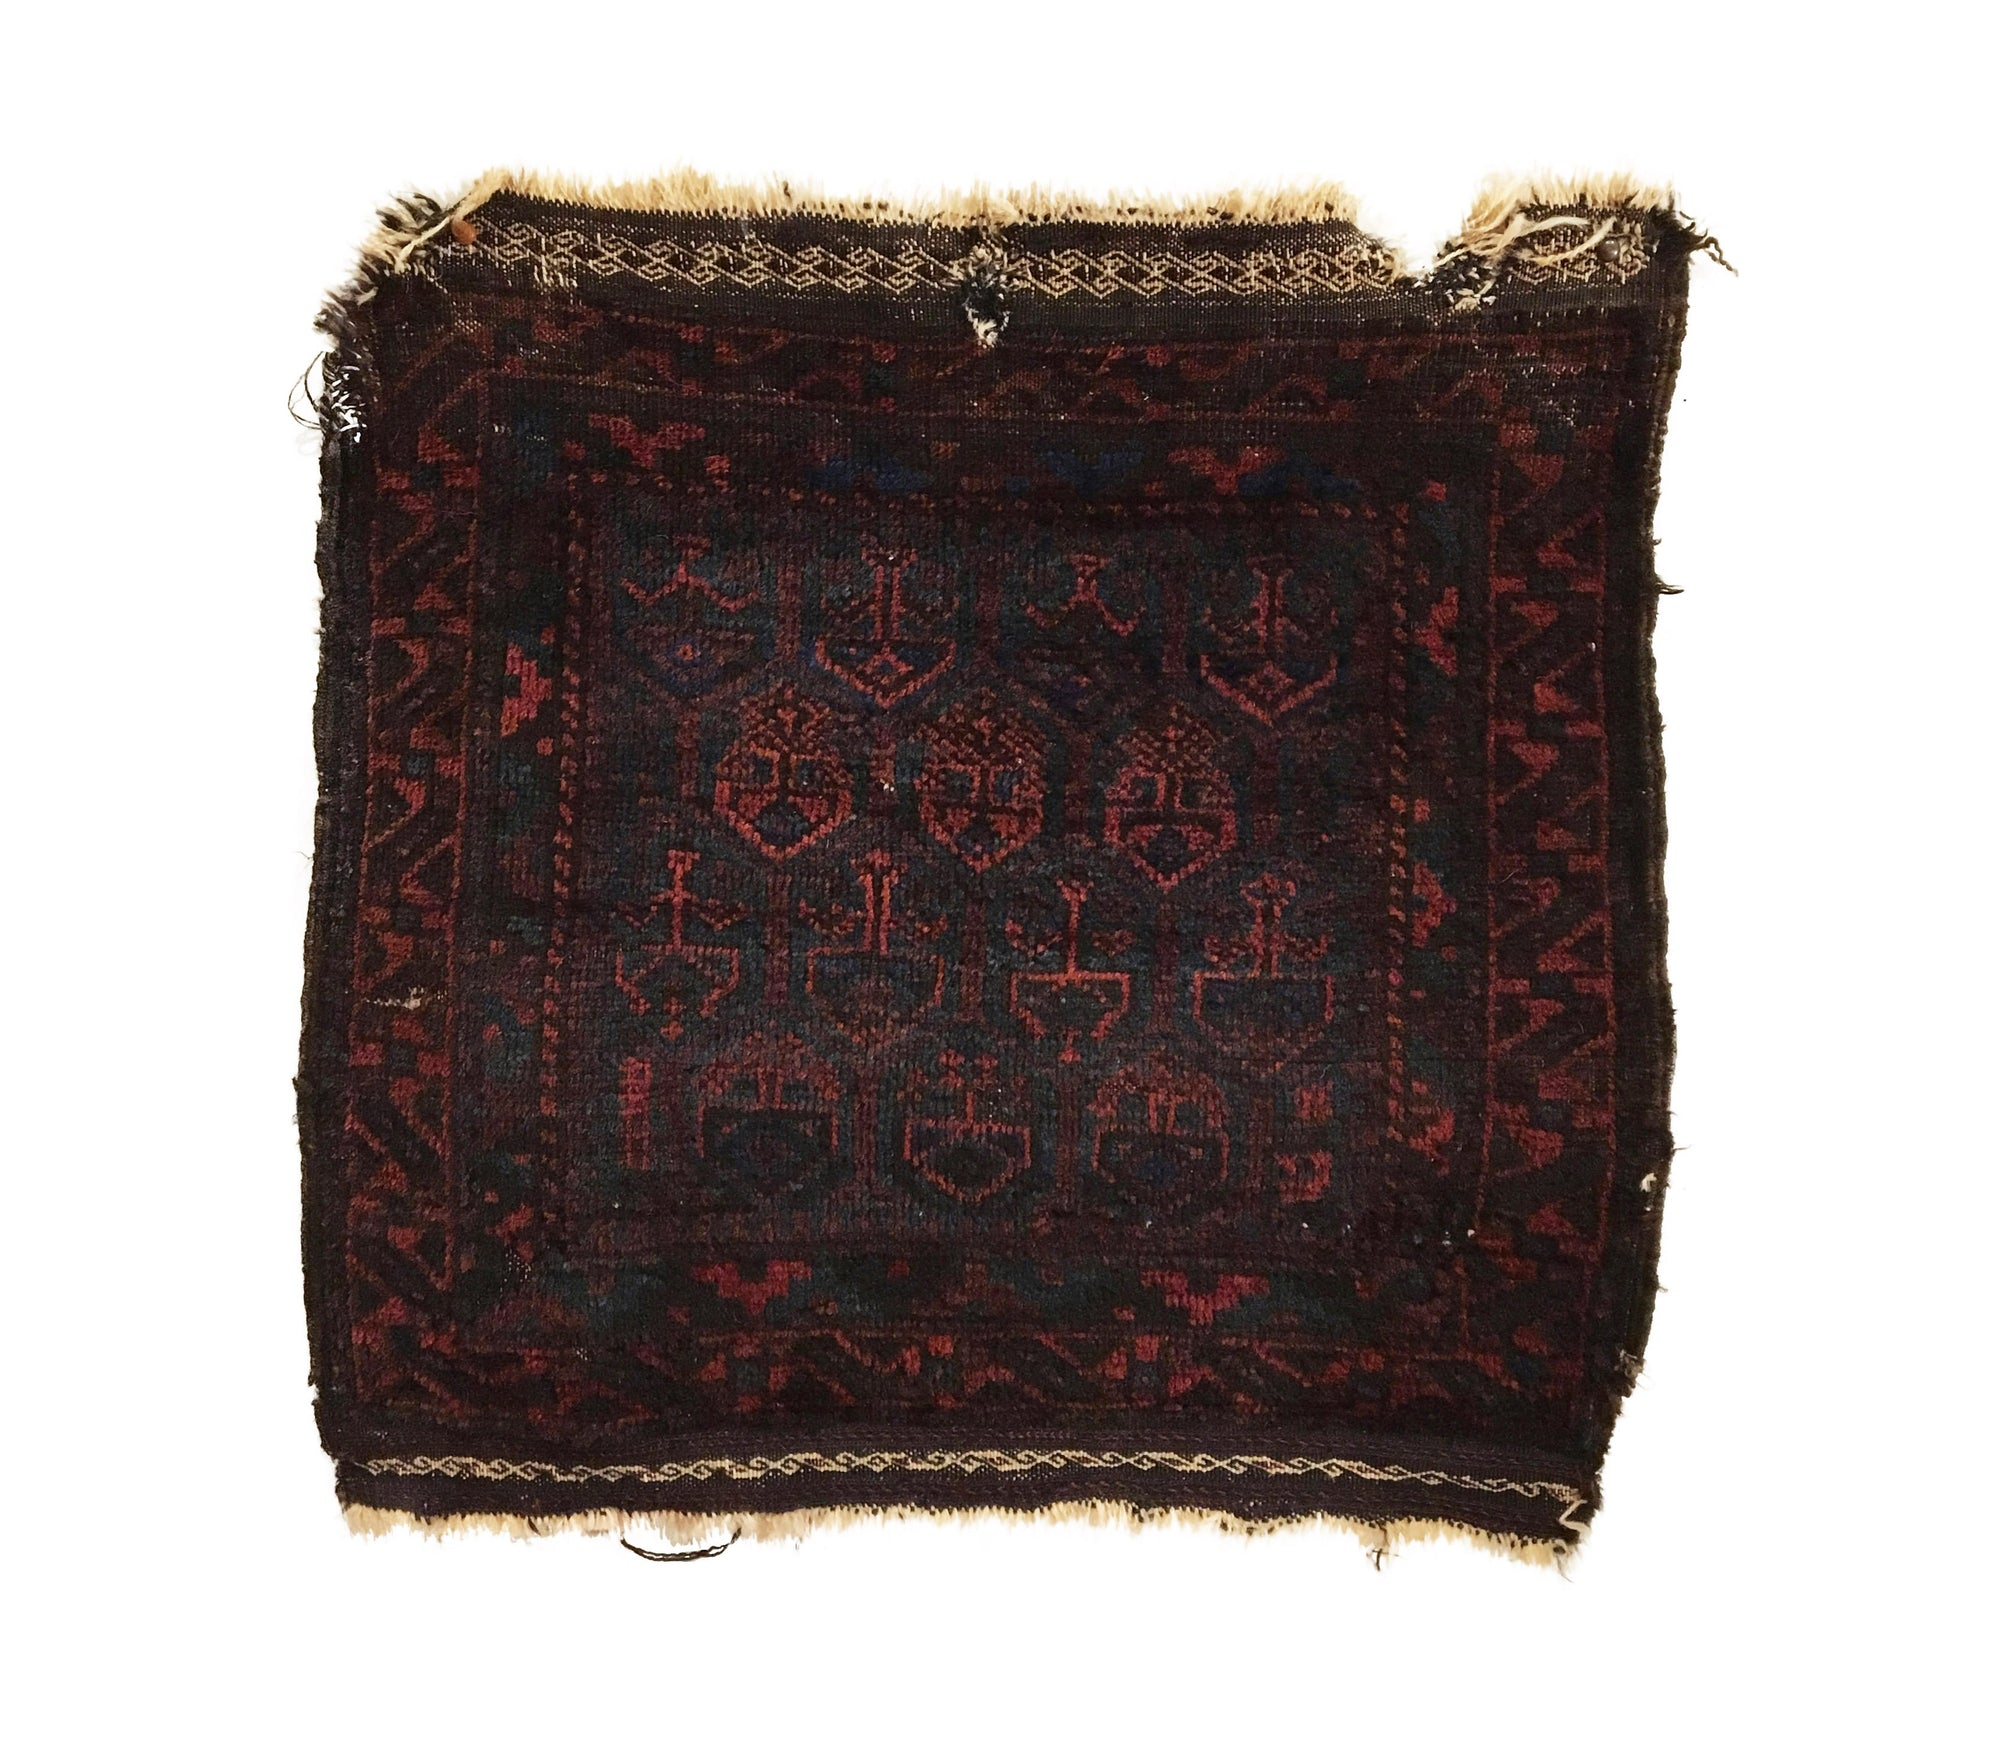 Antique Afghan Baluch Square Rug 2'1 x 2'1